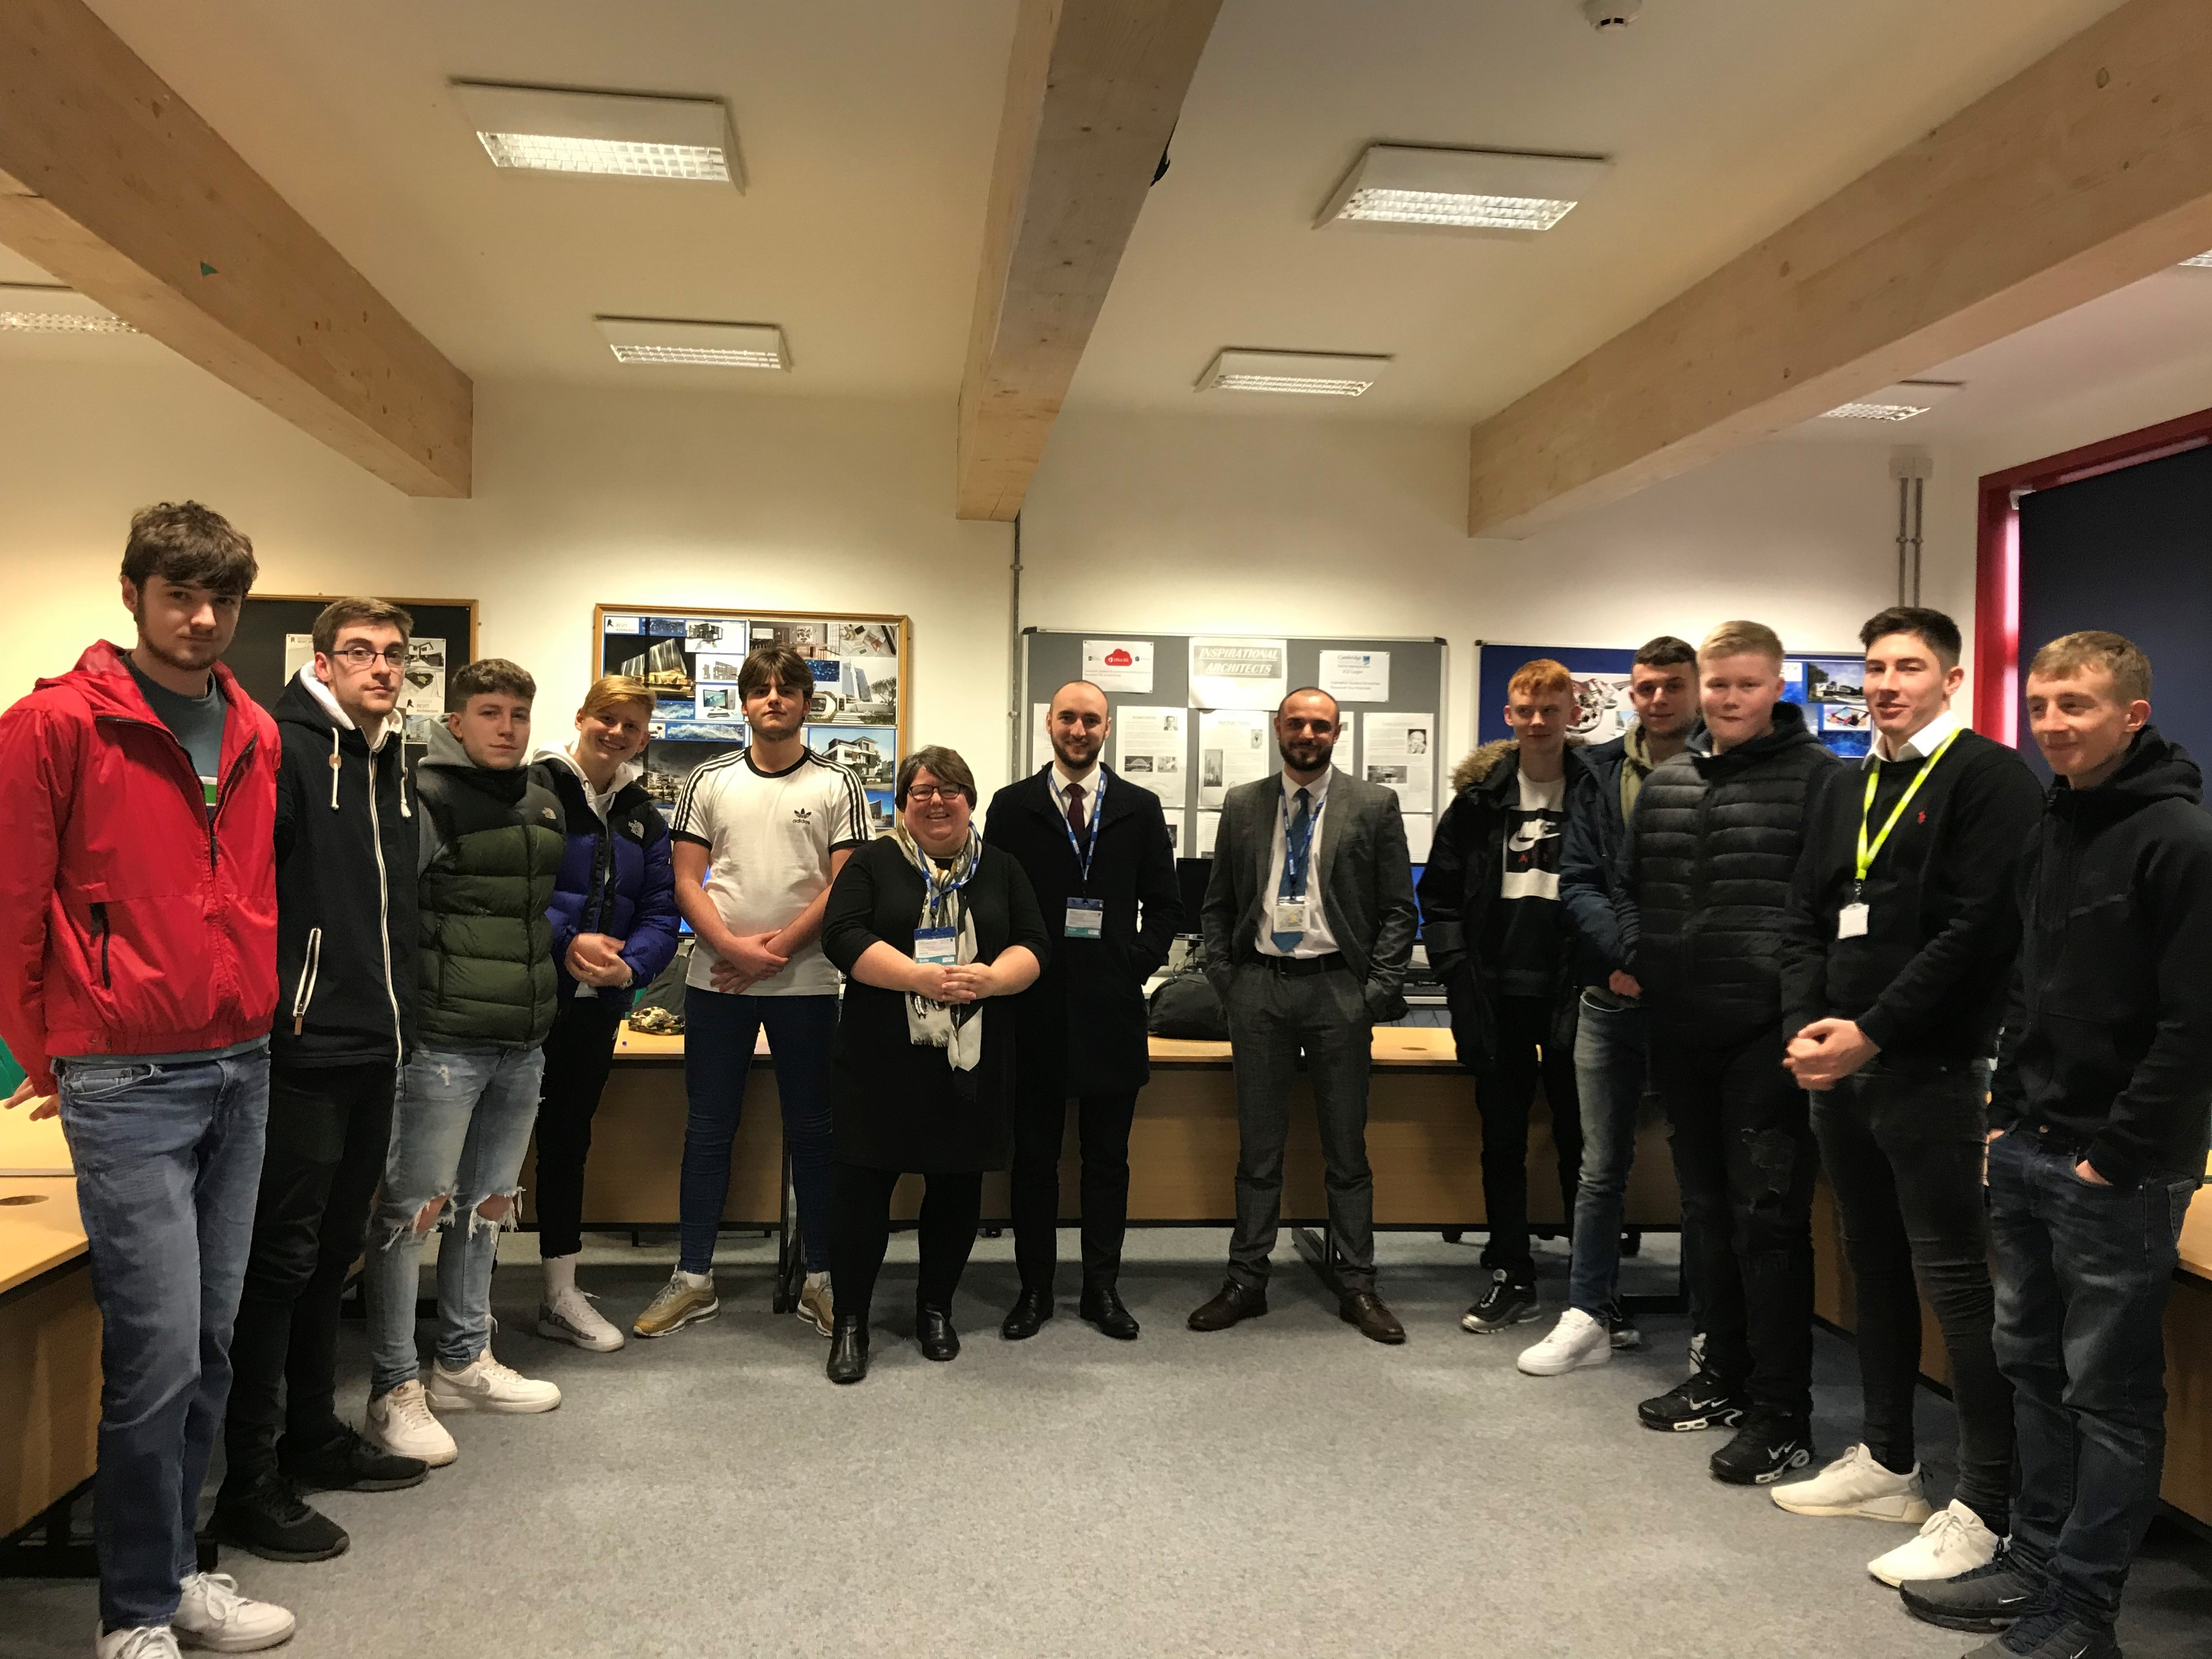 Construction students make an excellent impression on major local employer